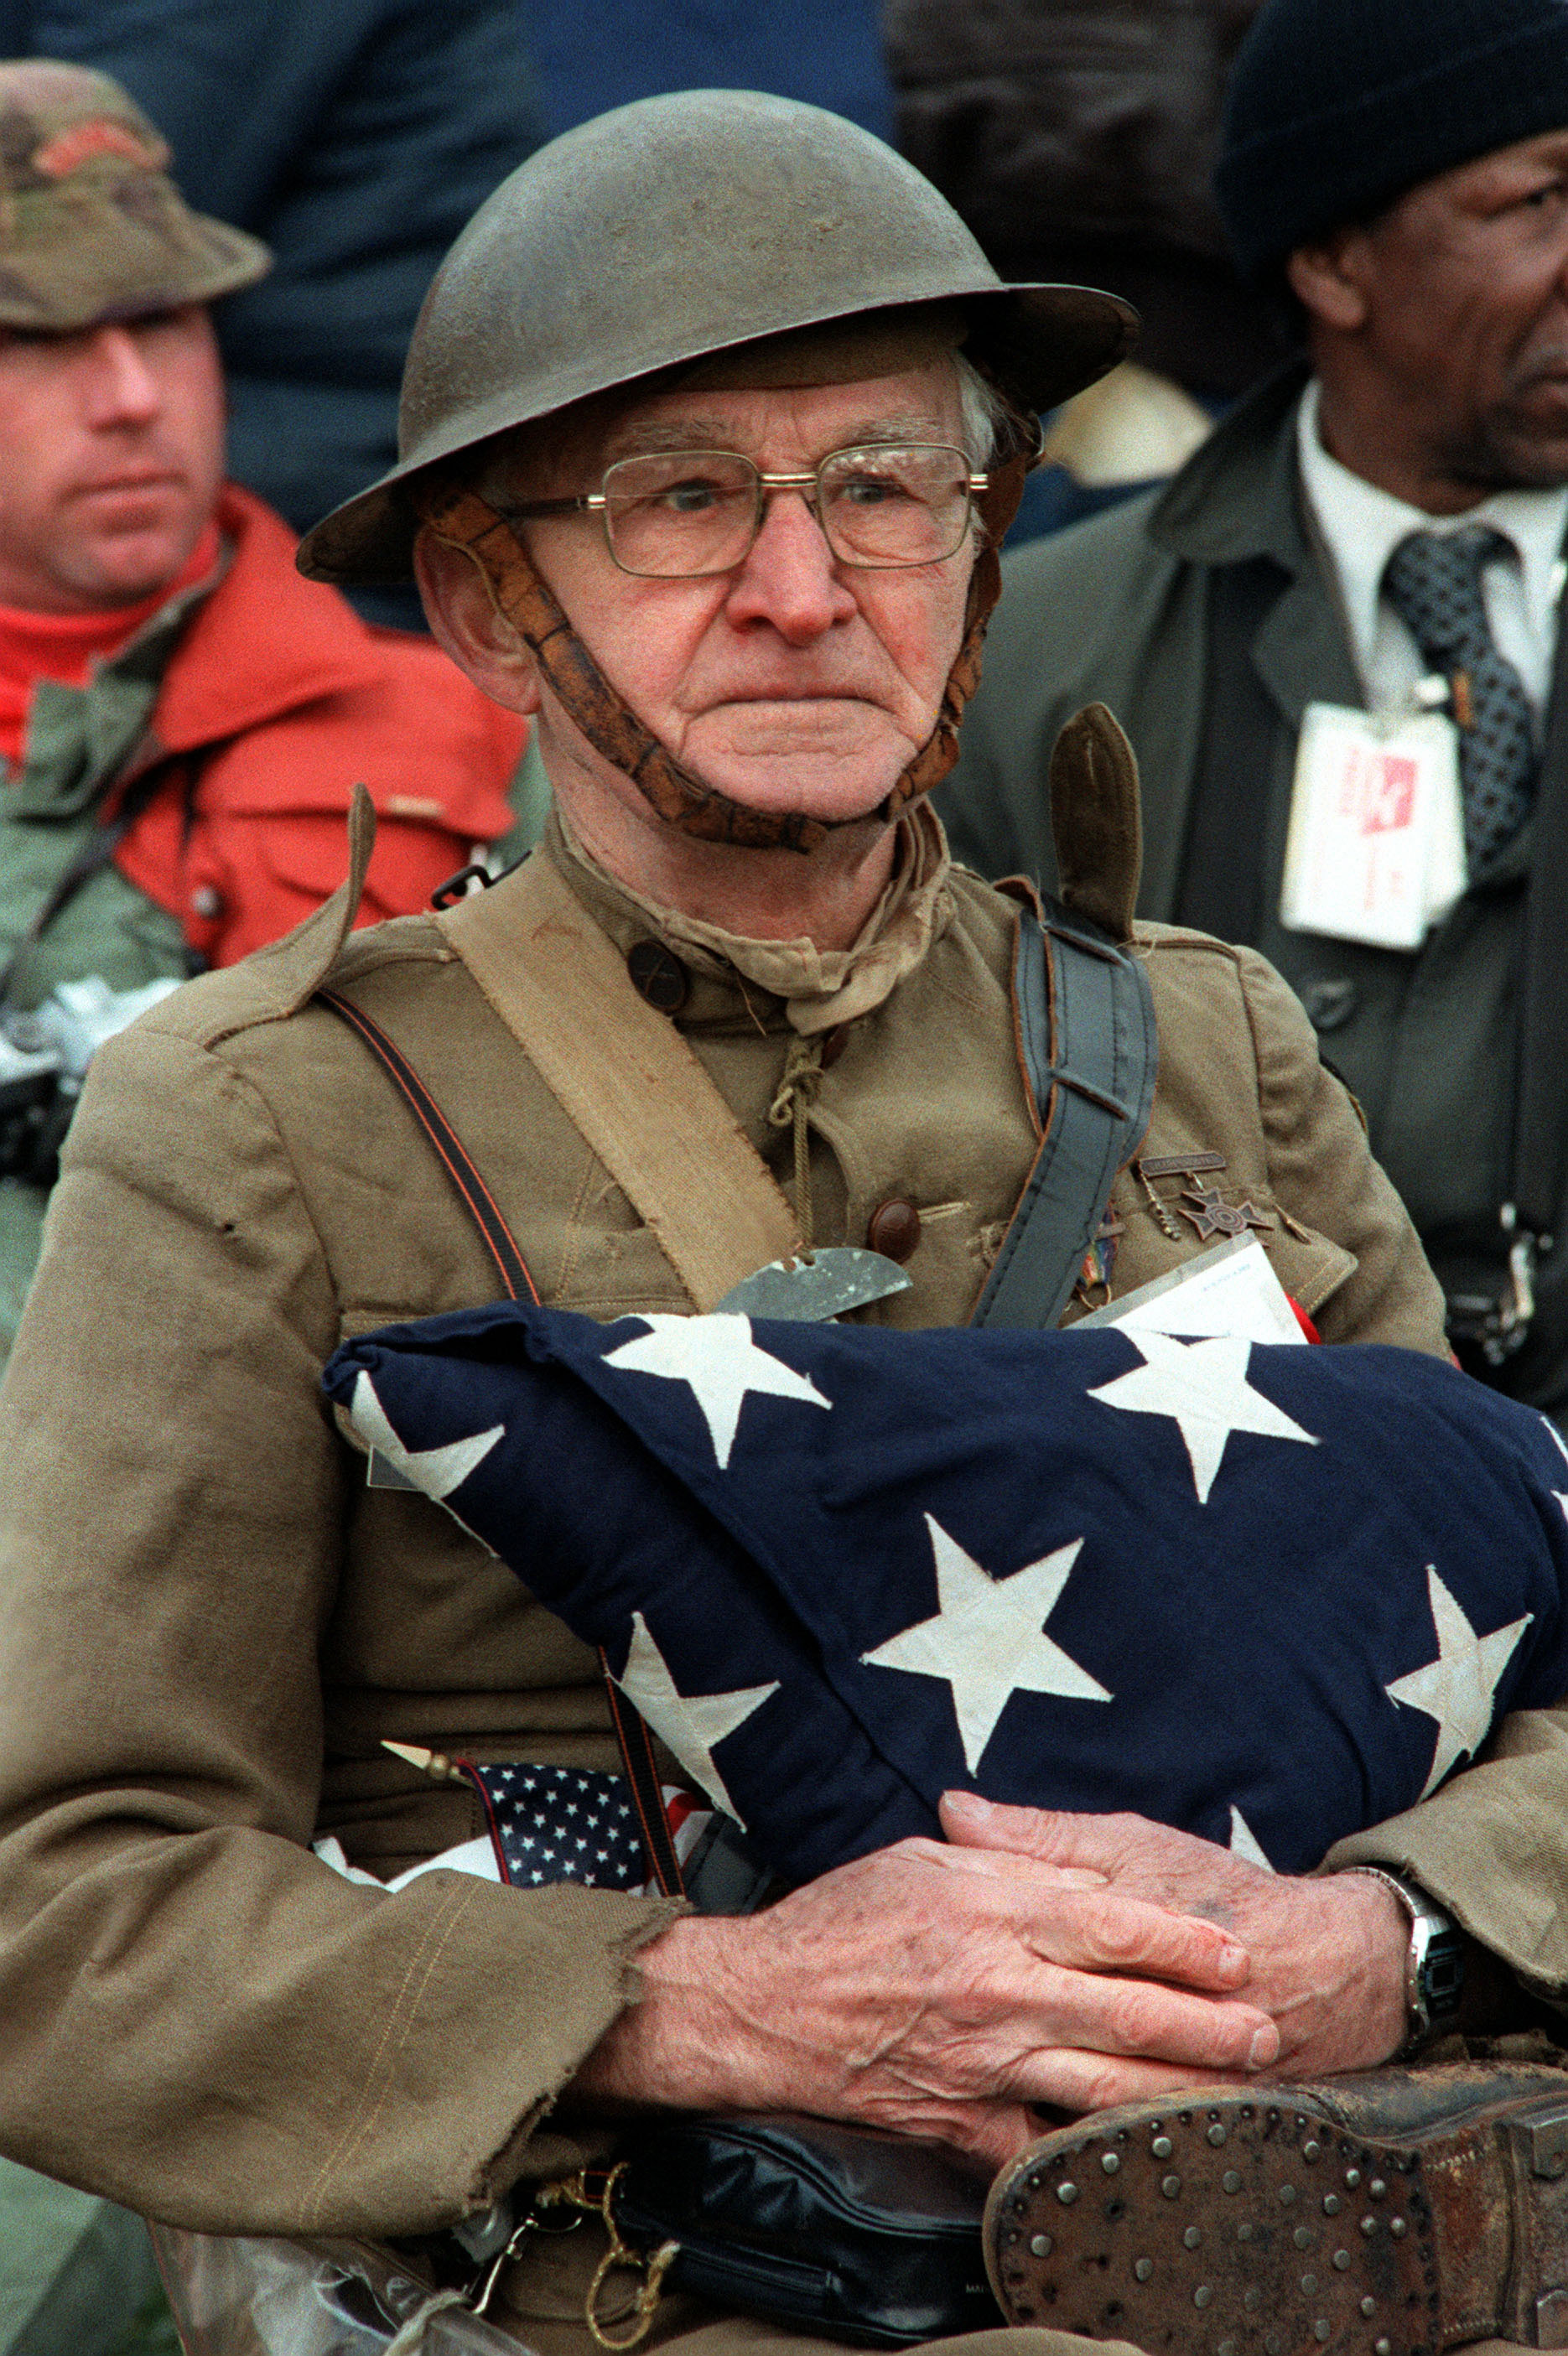 veterans day - wikipedia